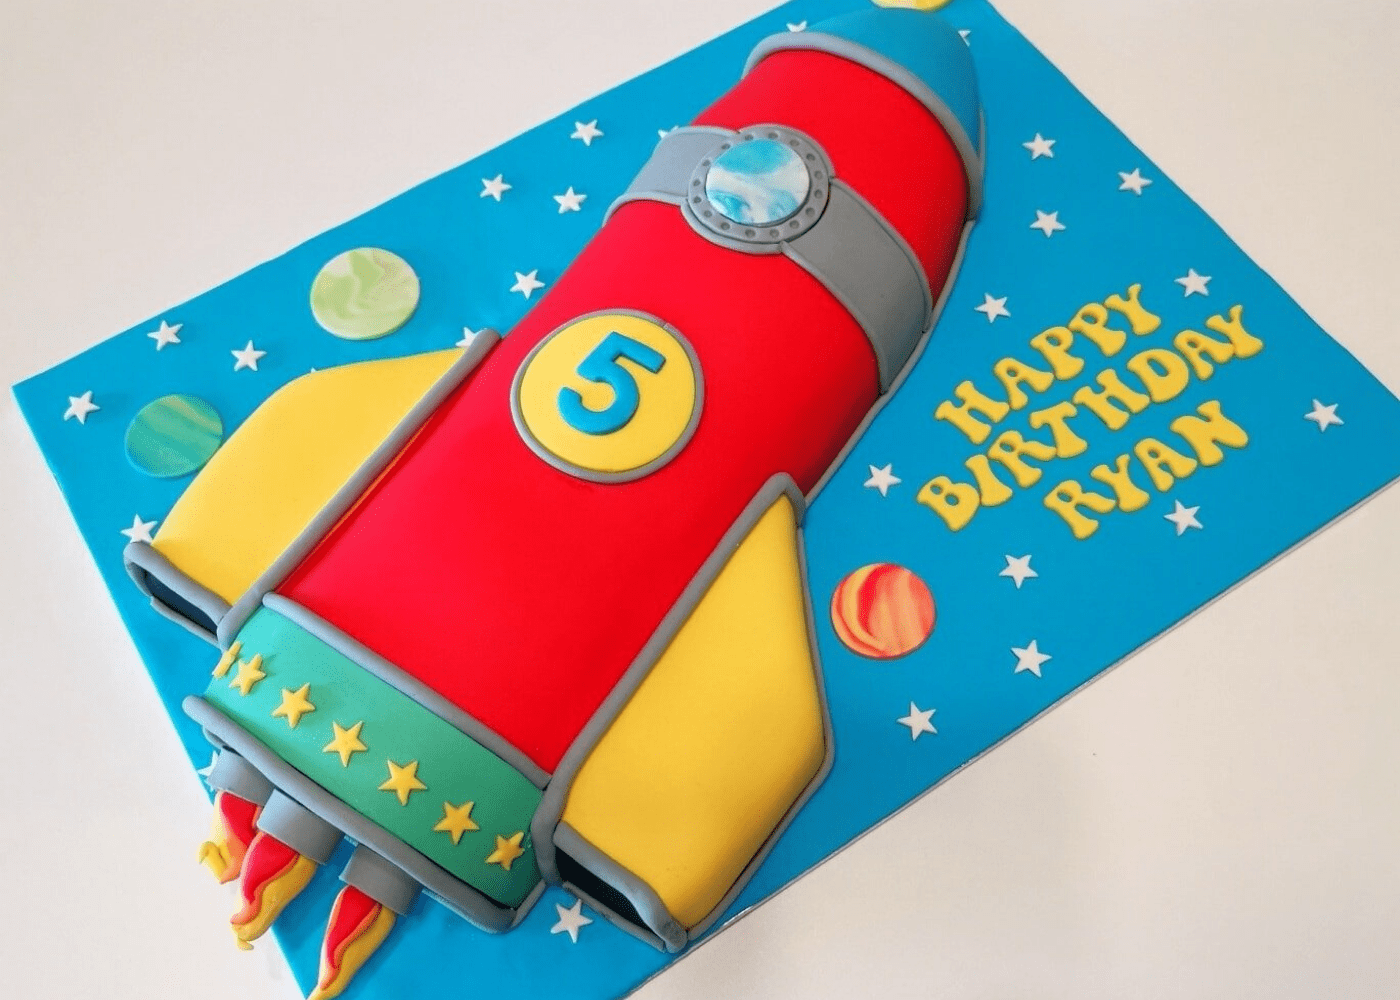 Glazed Desserts | Best birthday cakes for kids in Singapore